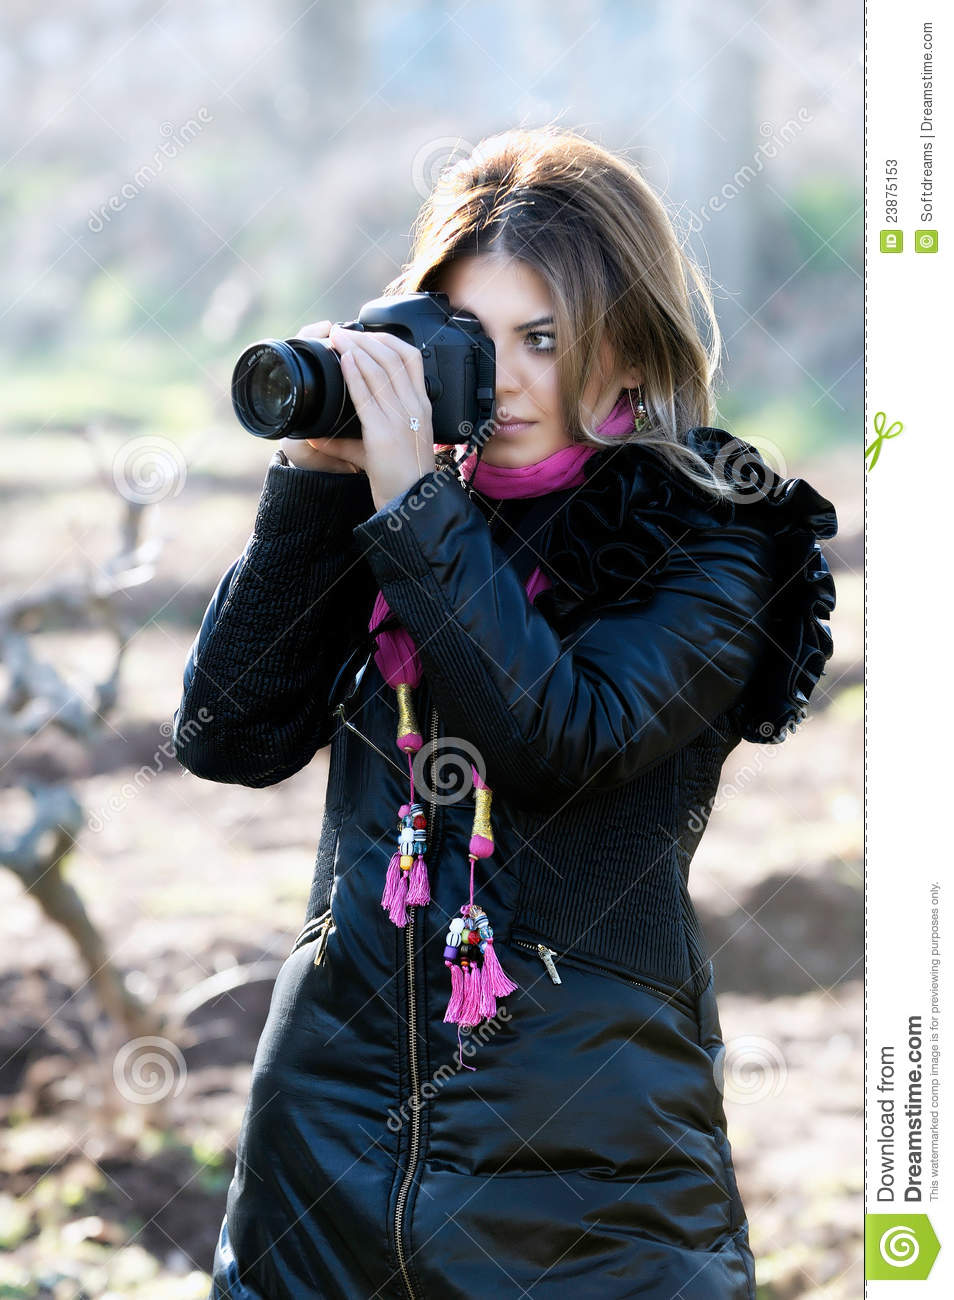 Smiling woman and photo camera